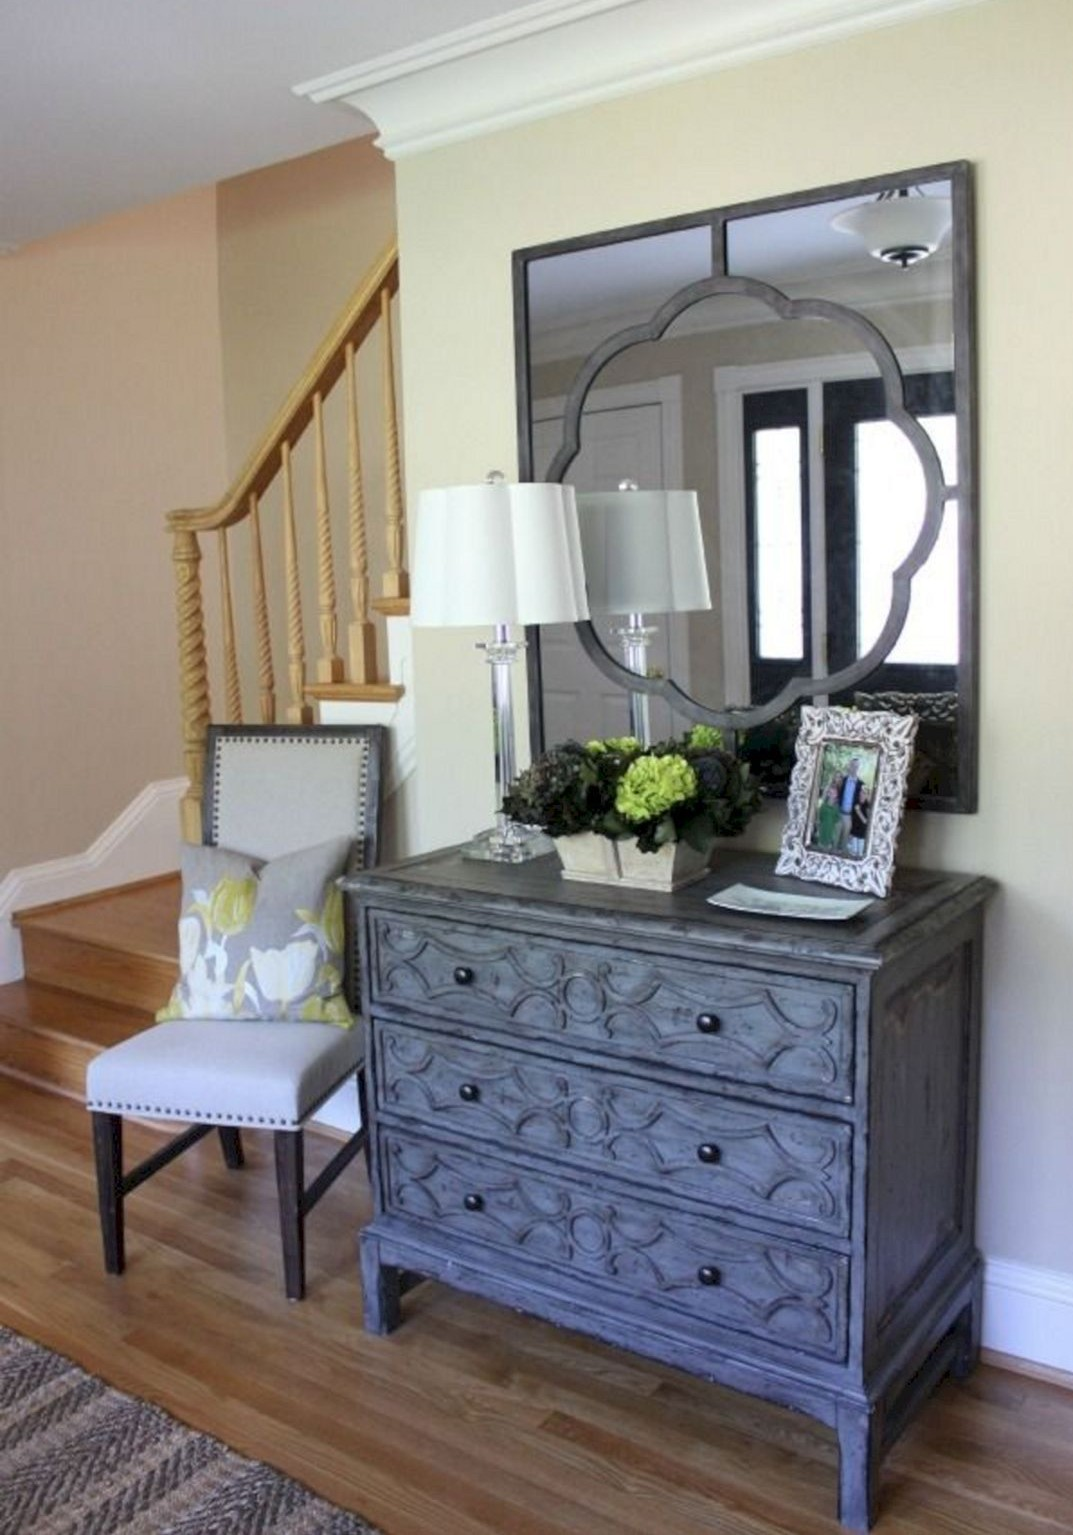 Small-foyer-entryway-decorating-idea-1